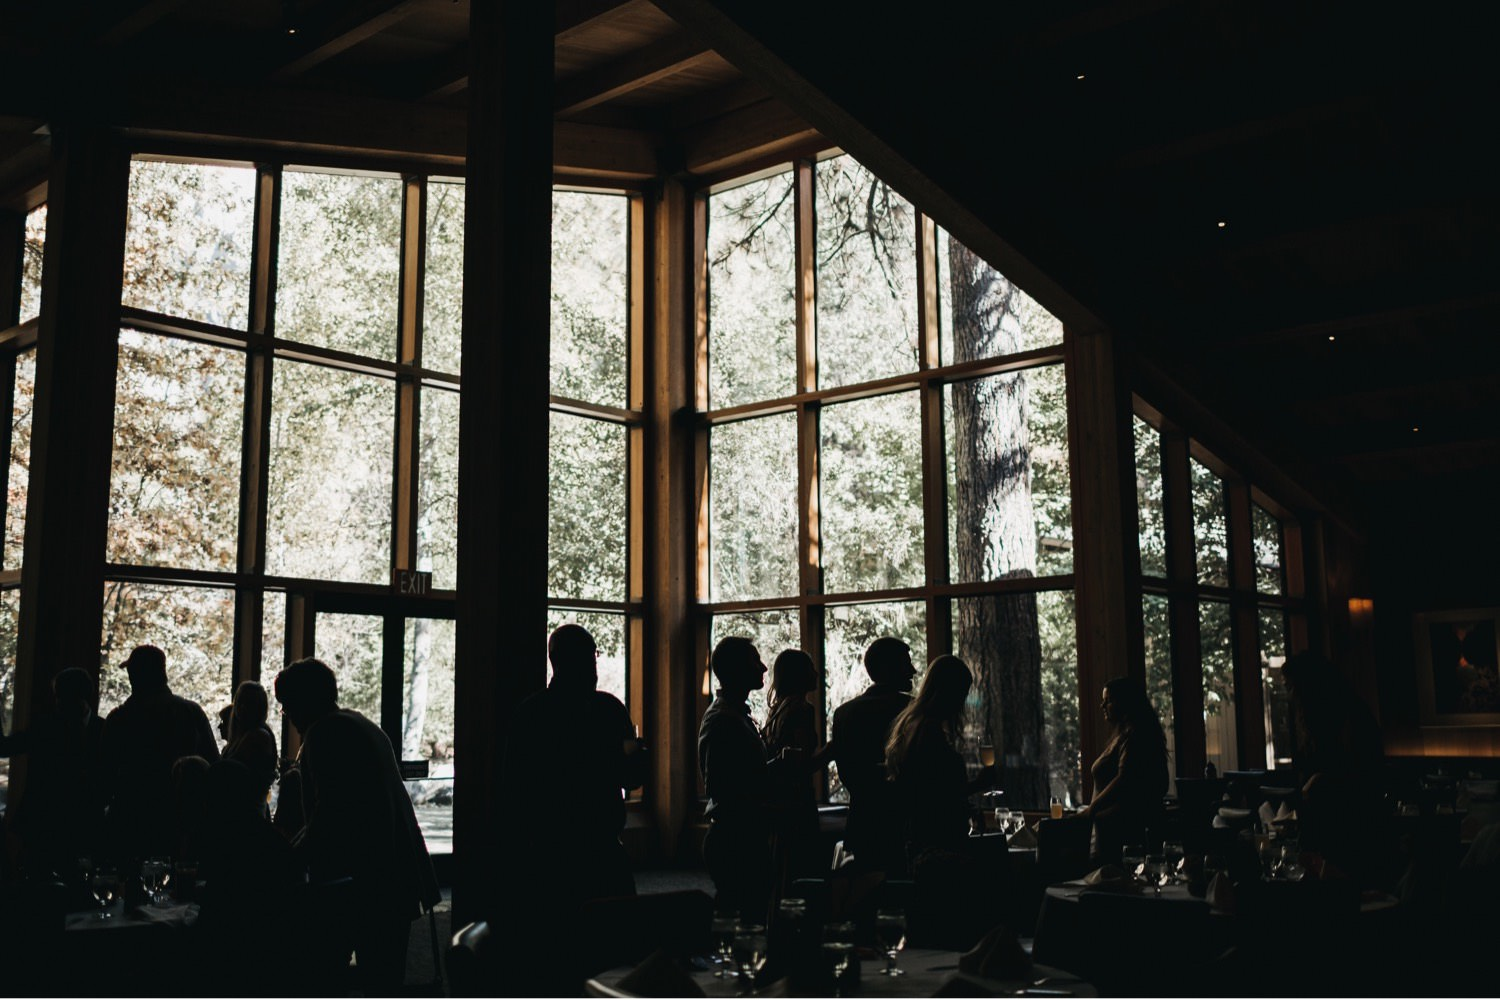 39_alex+matt-wedding-287_park_national_elopement_wedding_yosemite_intimate.jpg